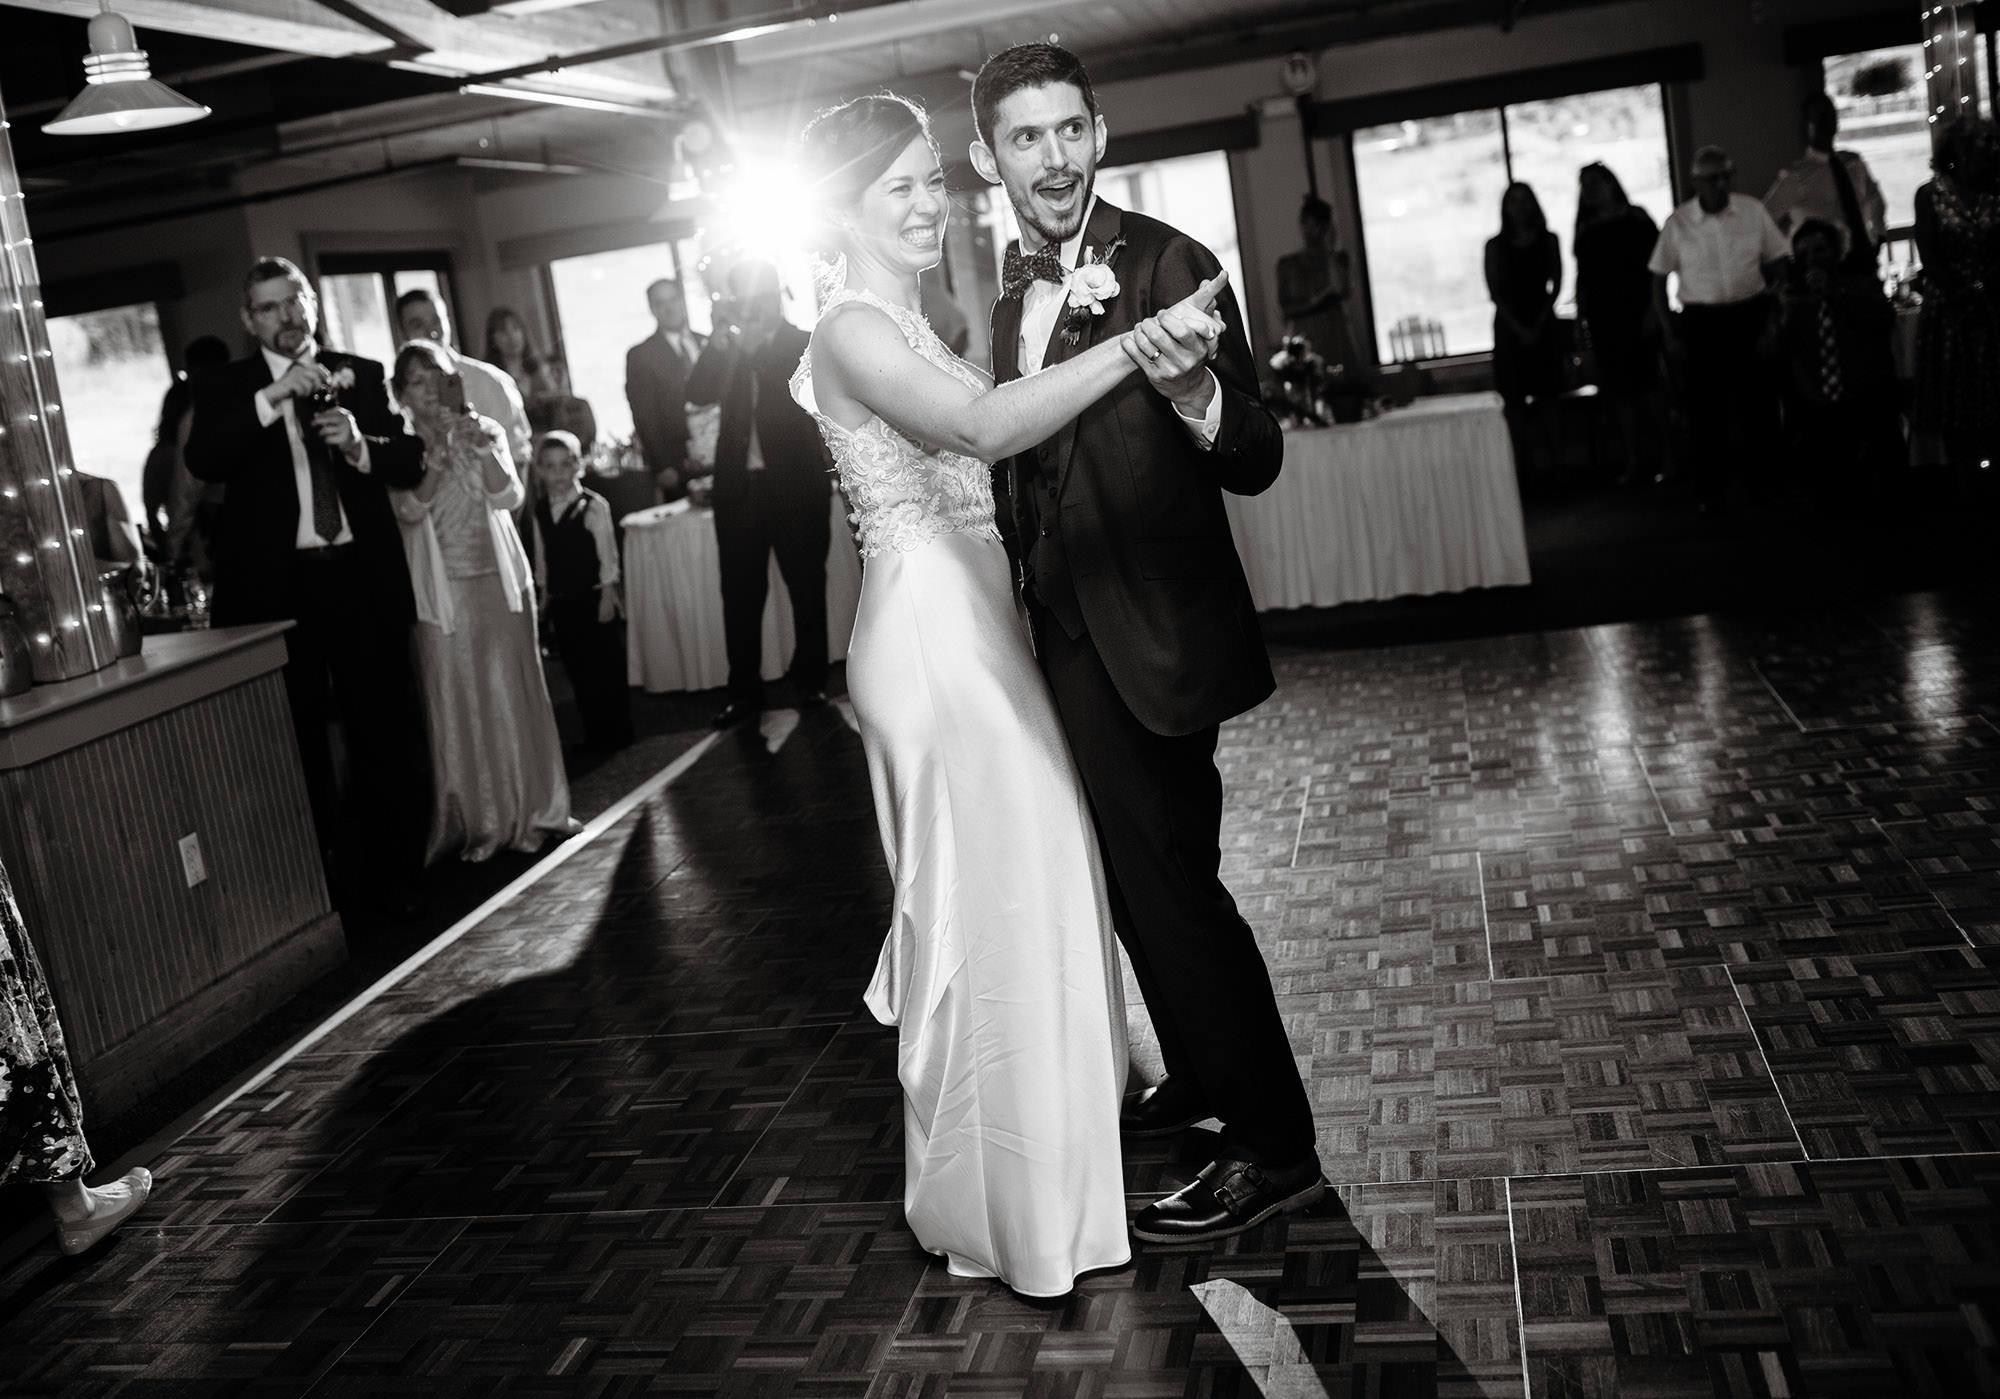 The bride and groom share their first dance at their Wachusett Mountain wedding.